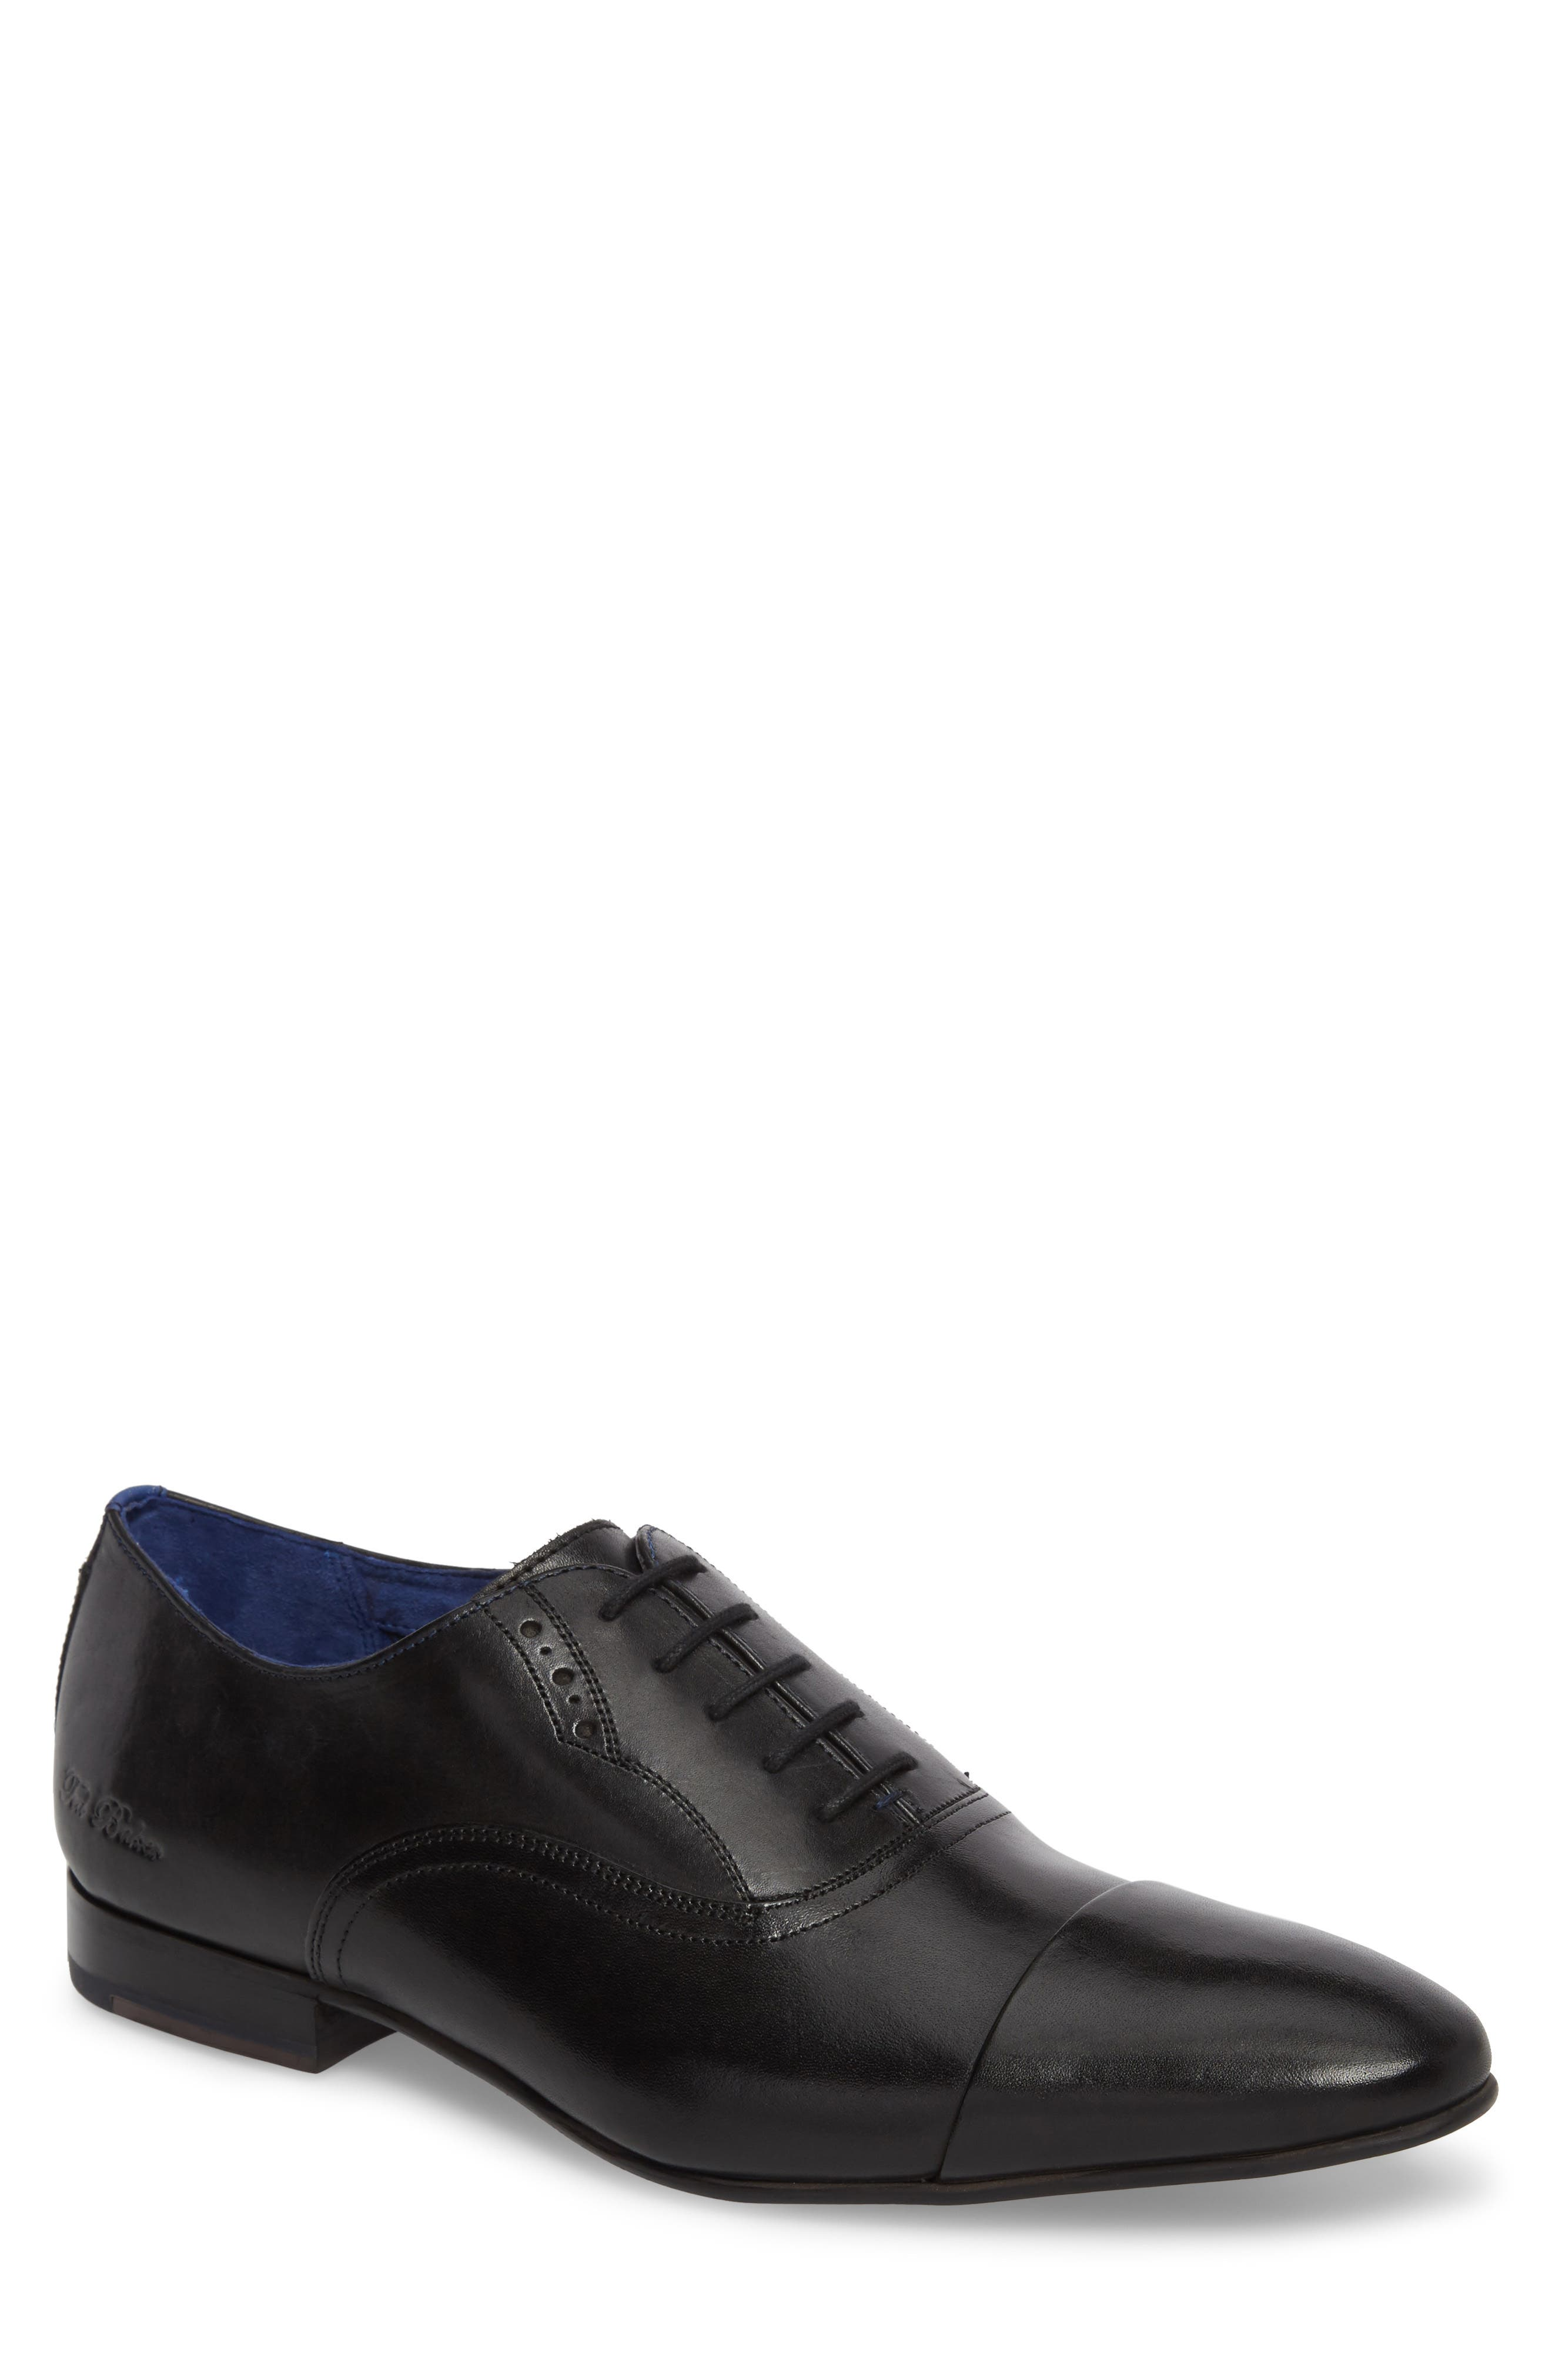 Murain Cap Toe Oxford,                             Main thumbnail 1, color,